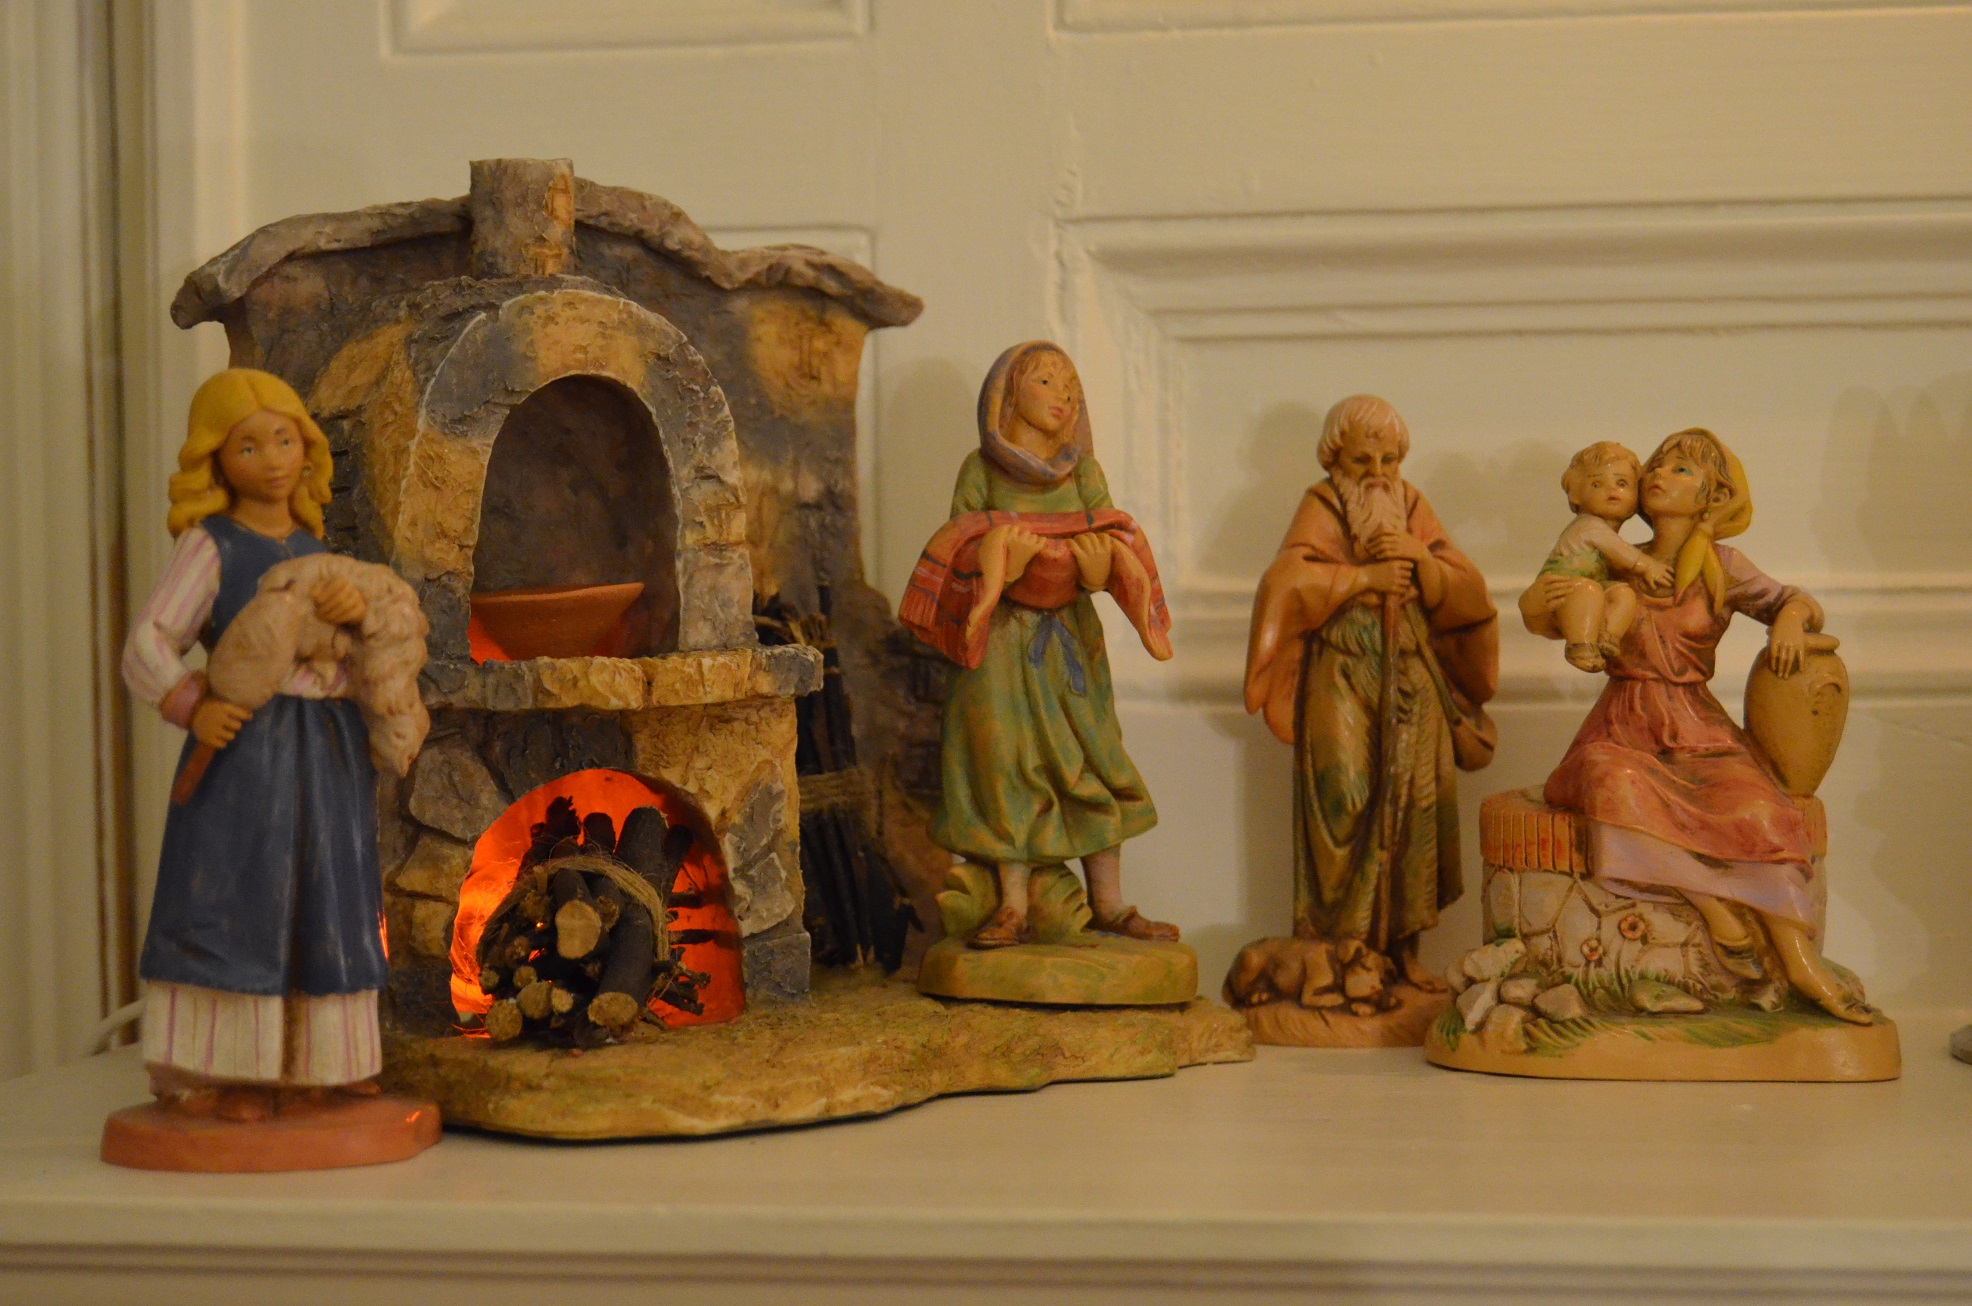 And Hawthorn Inn's mantles offer up unusual manger scenes.